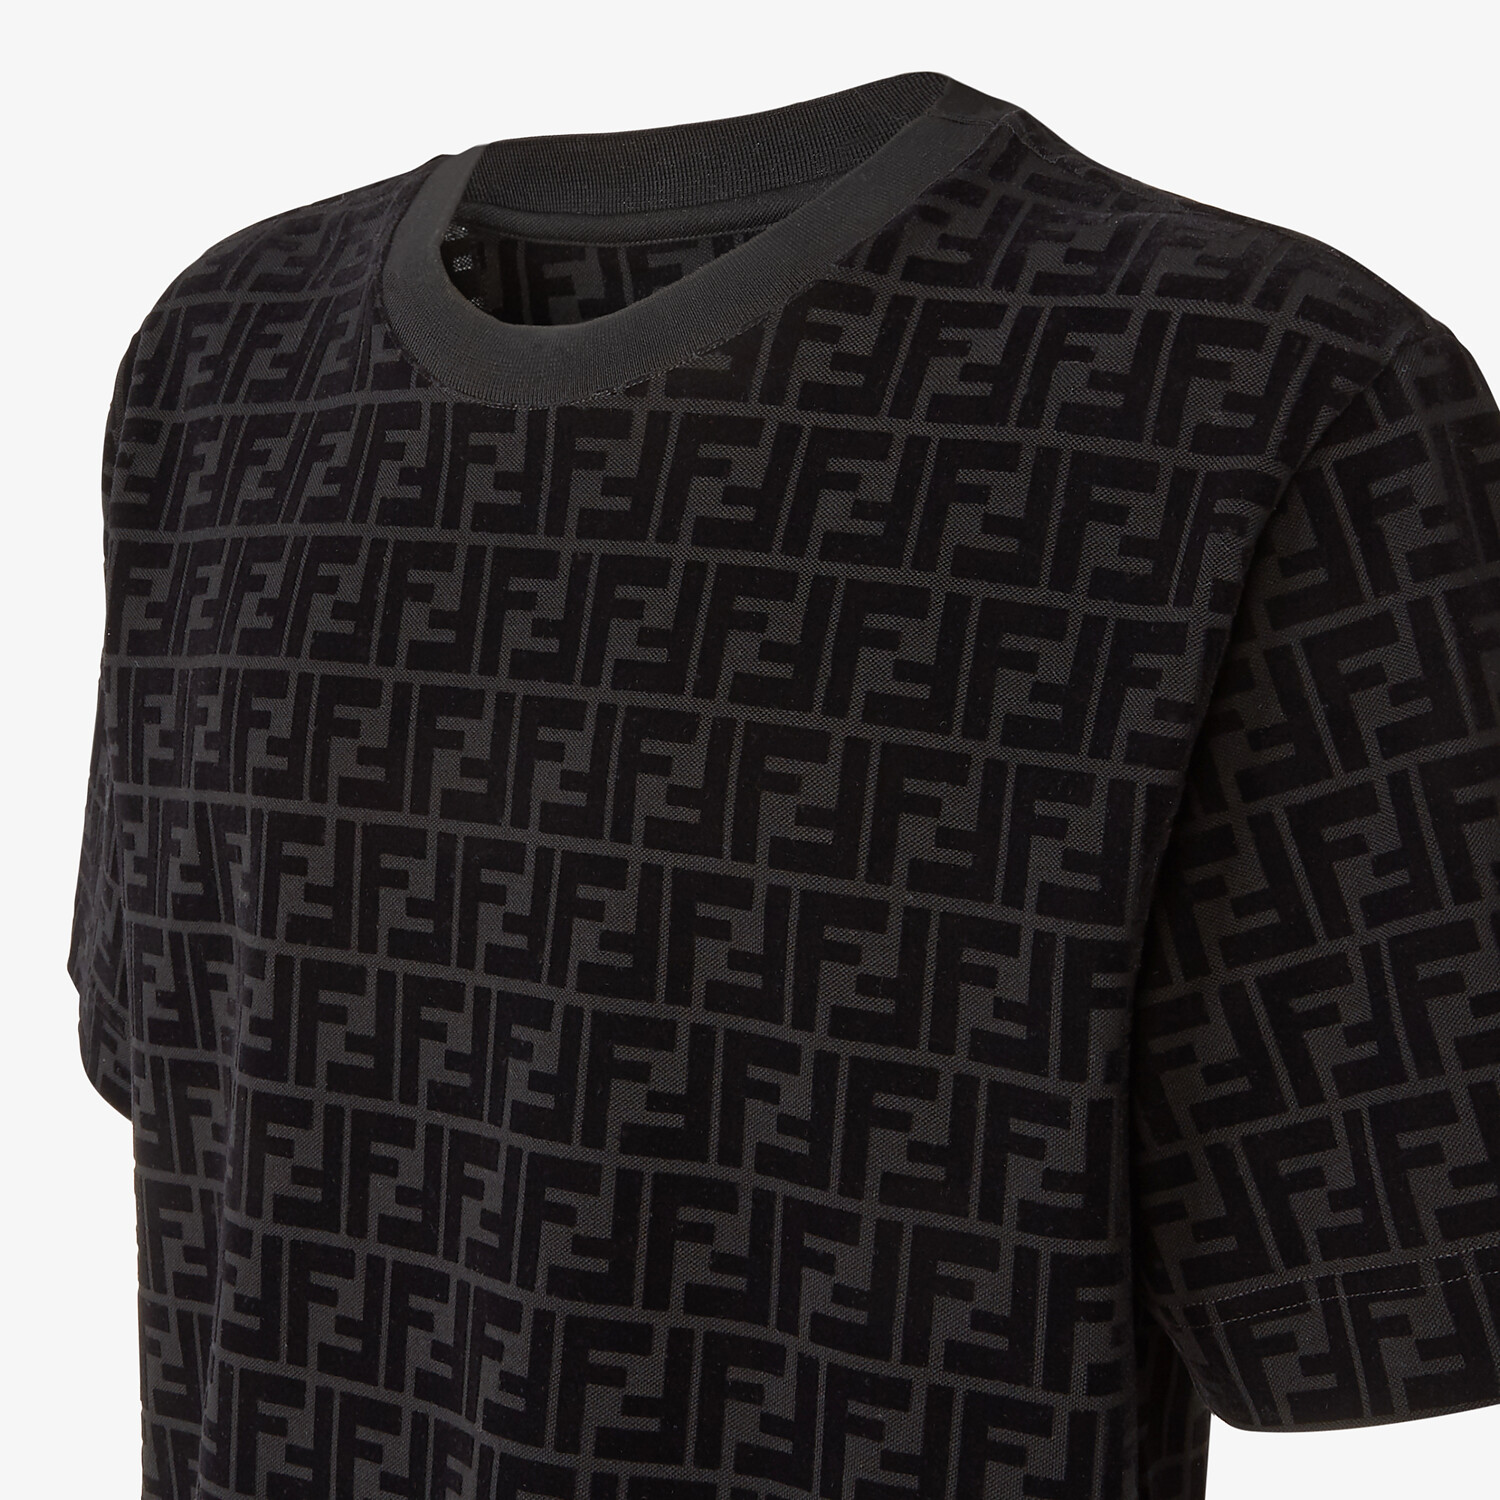 FENDI T-SHIRT - T-shirt in black piqué - view 3 detail